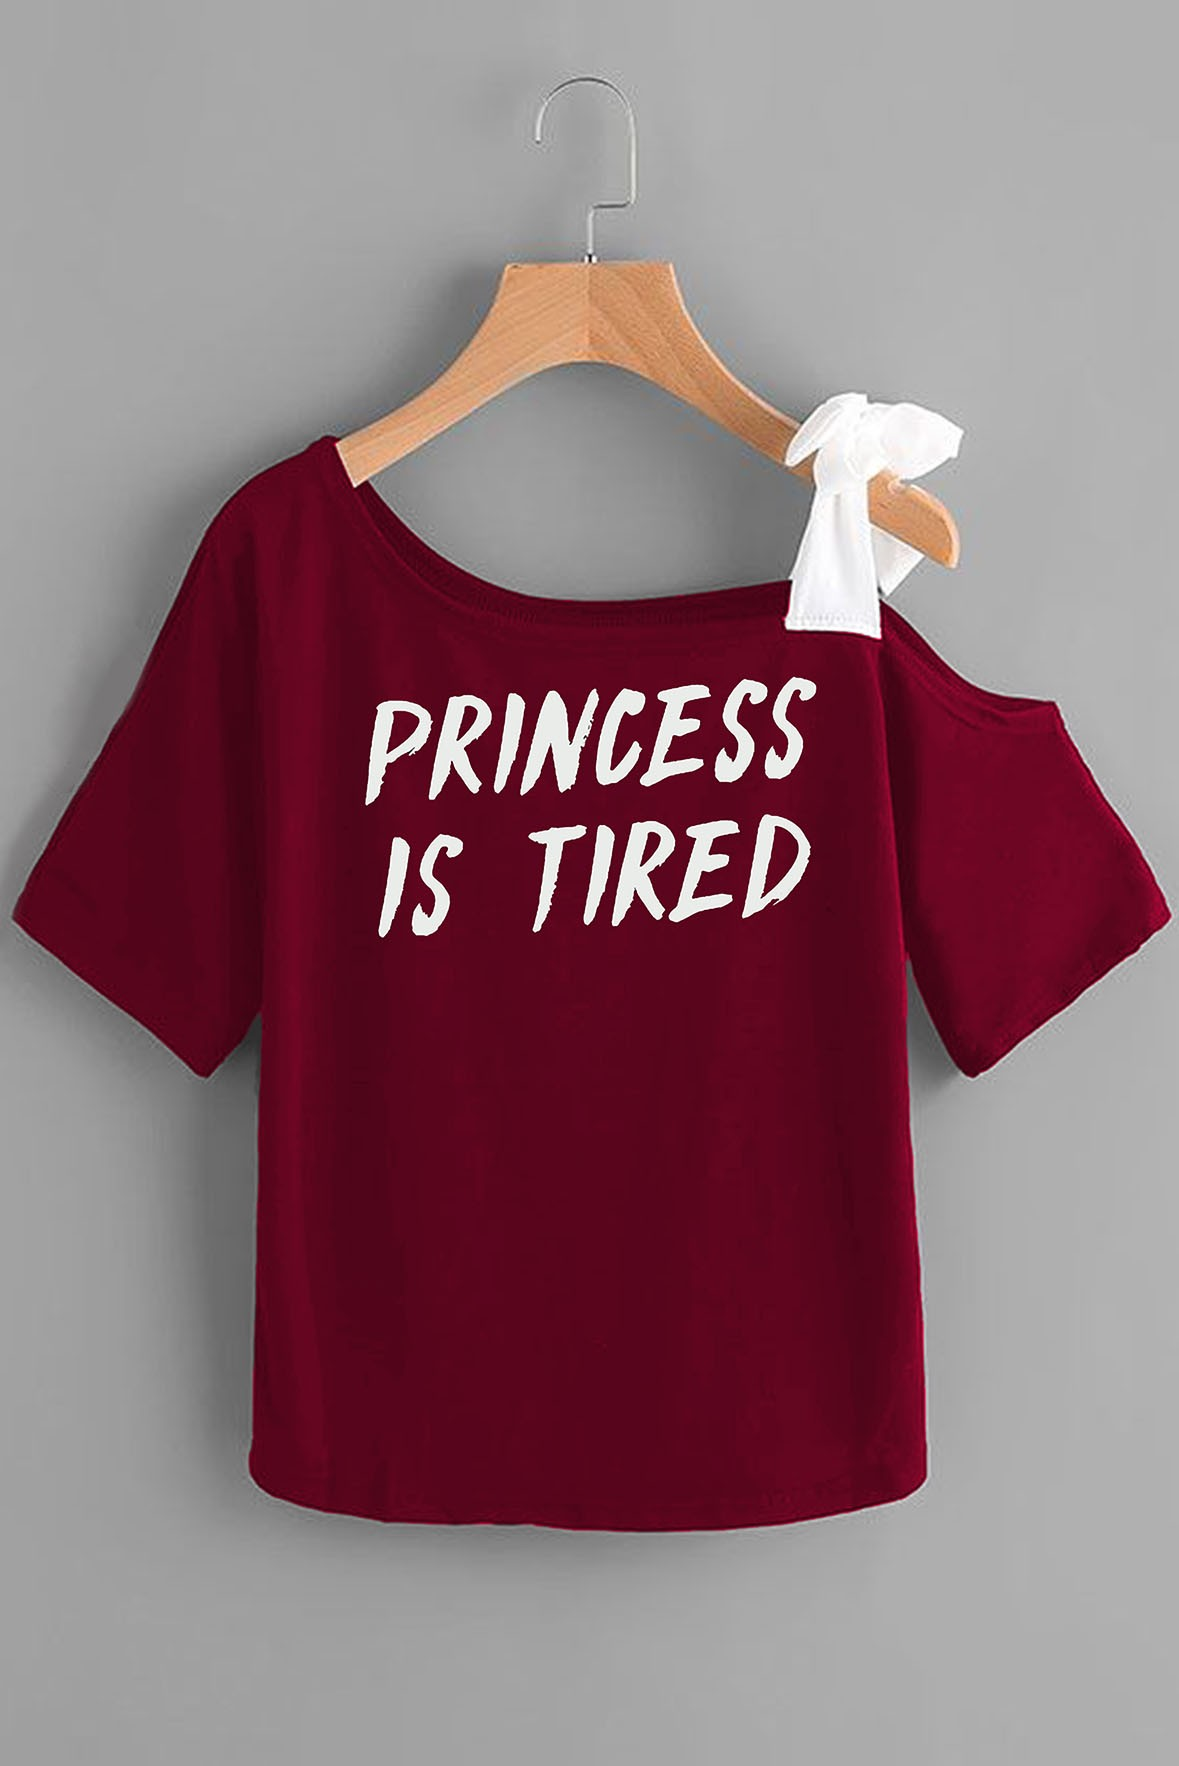 Princess is tired marsala white top